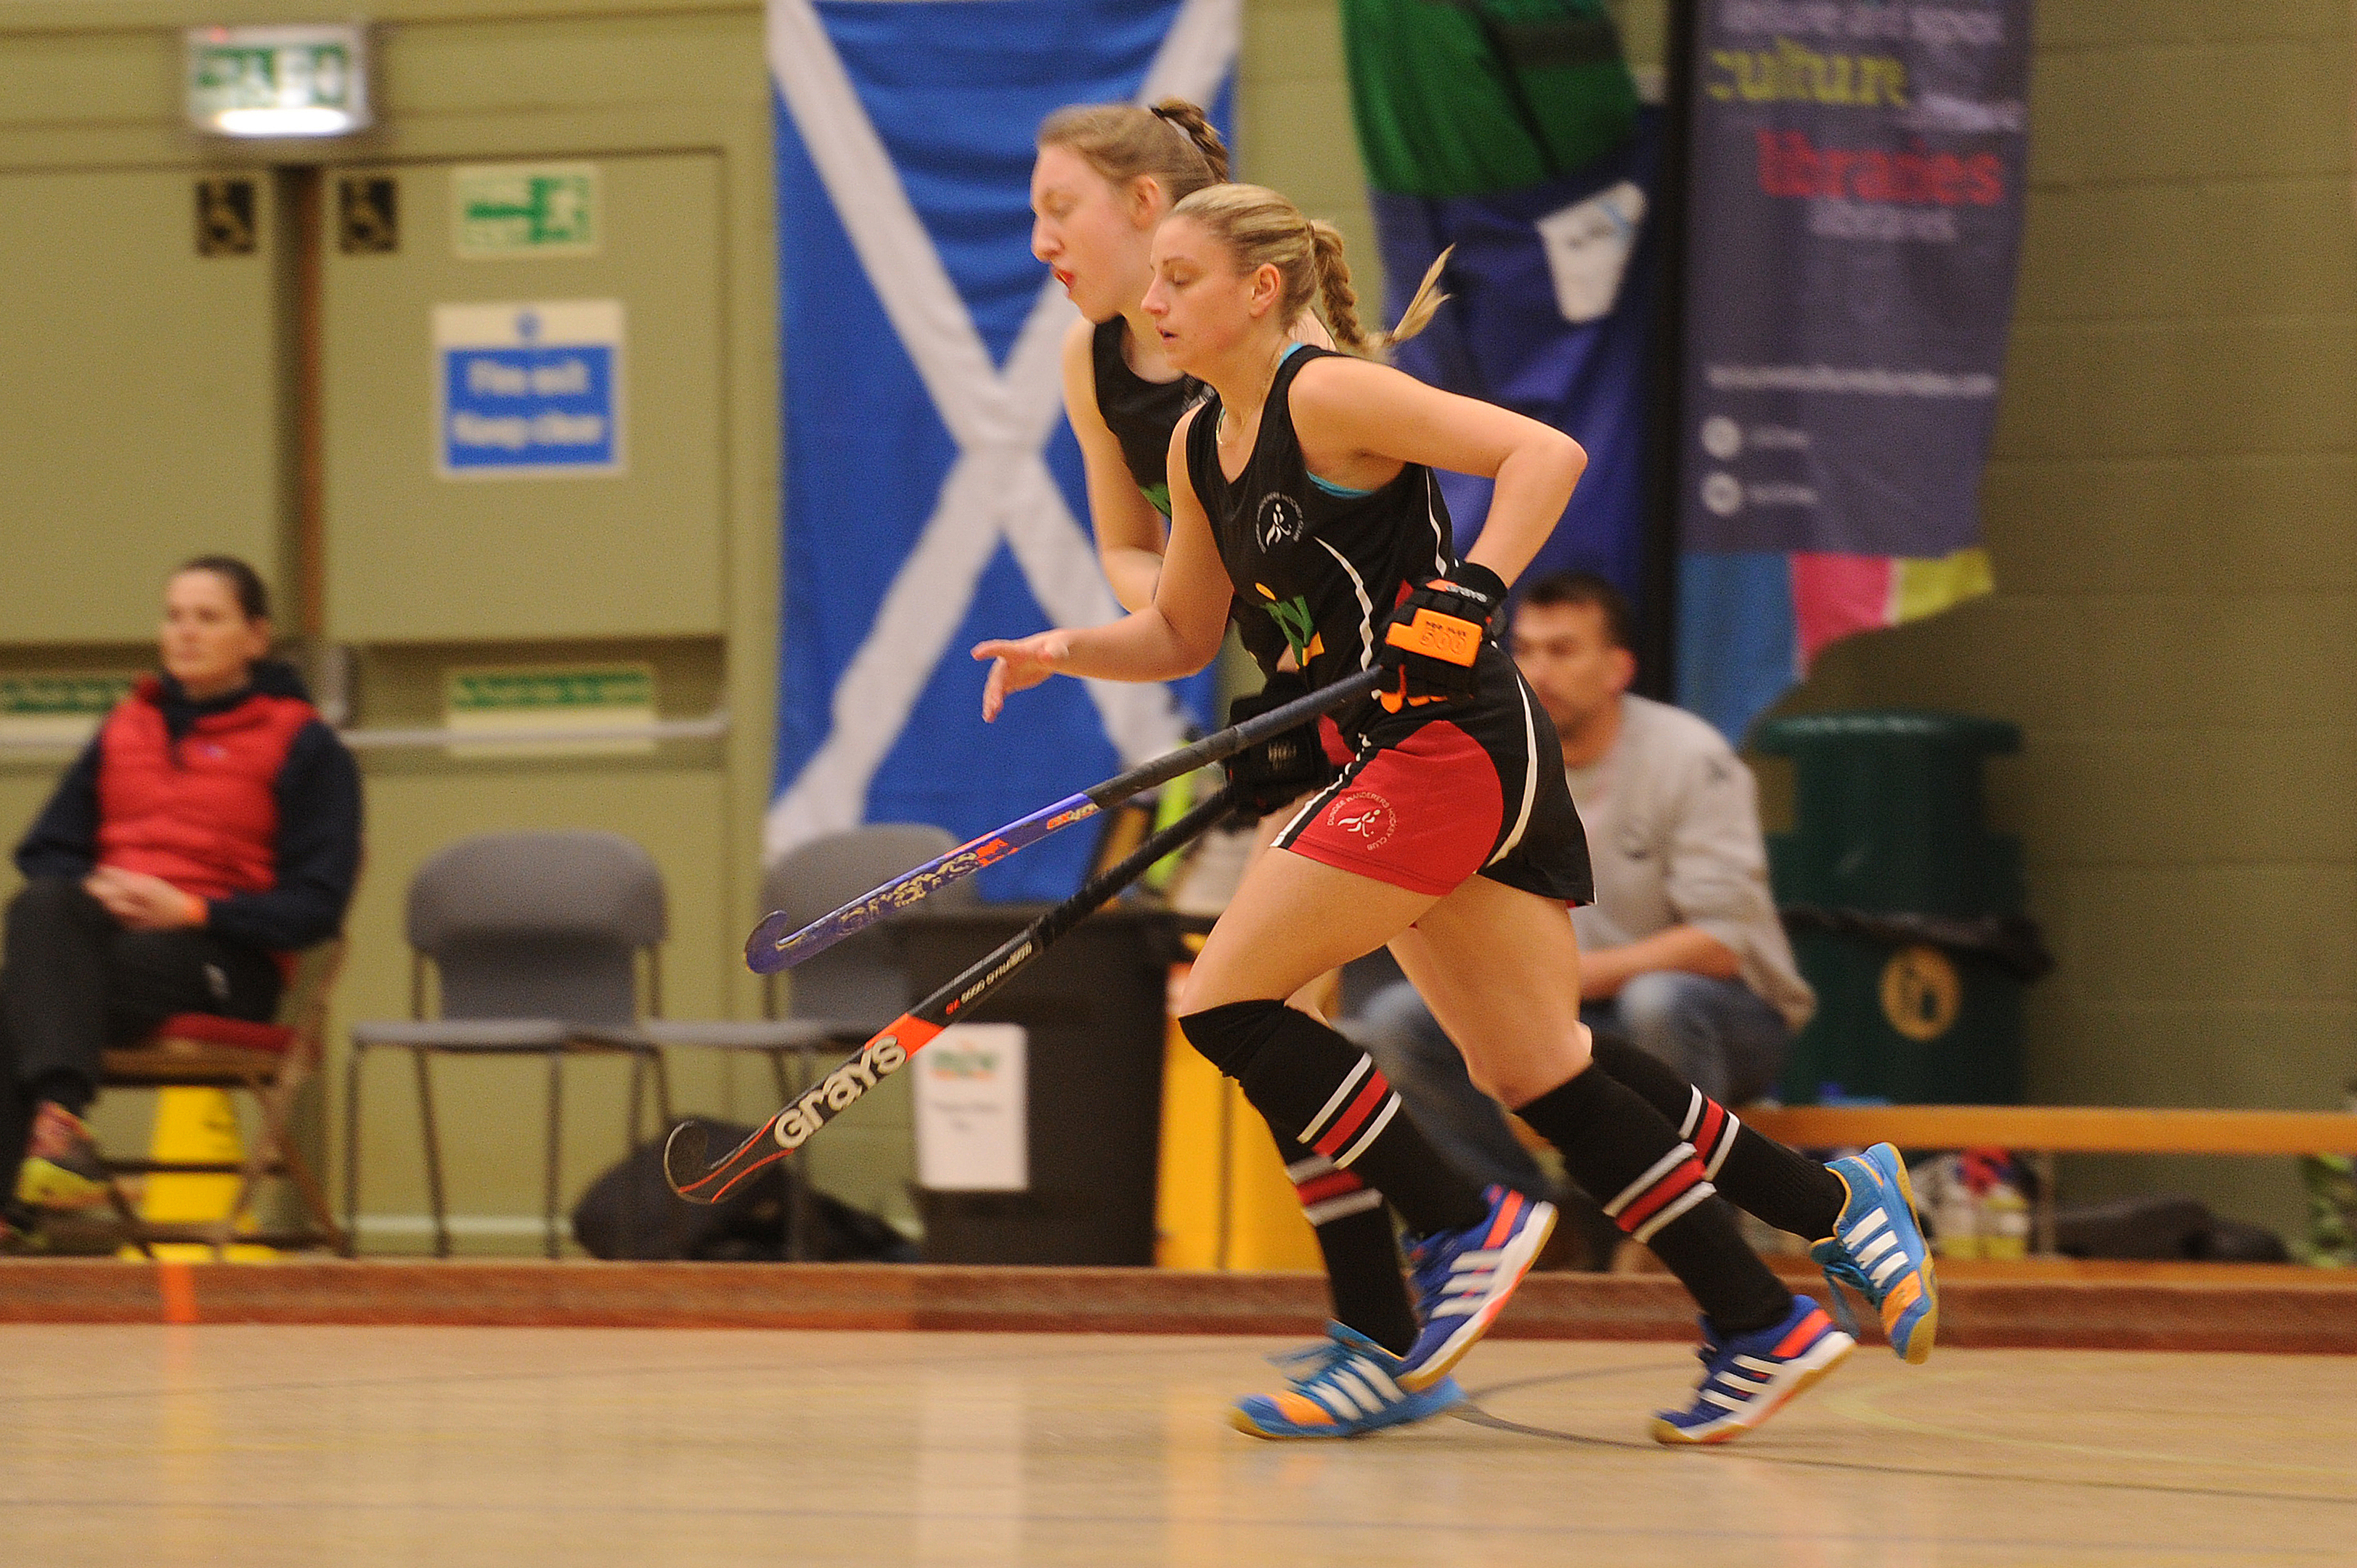 Dundee will host the best female indoor hockey players in Europe.